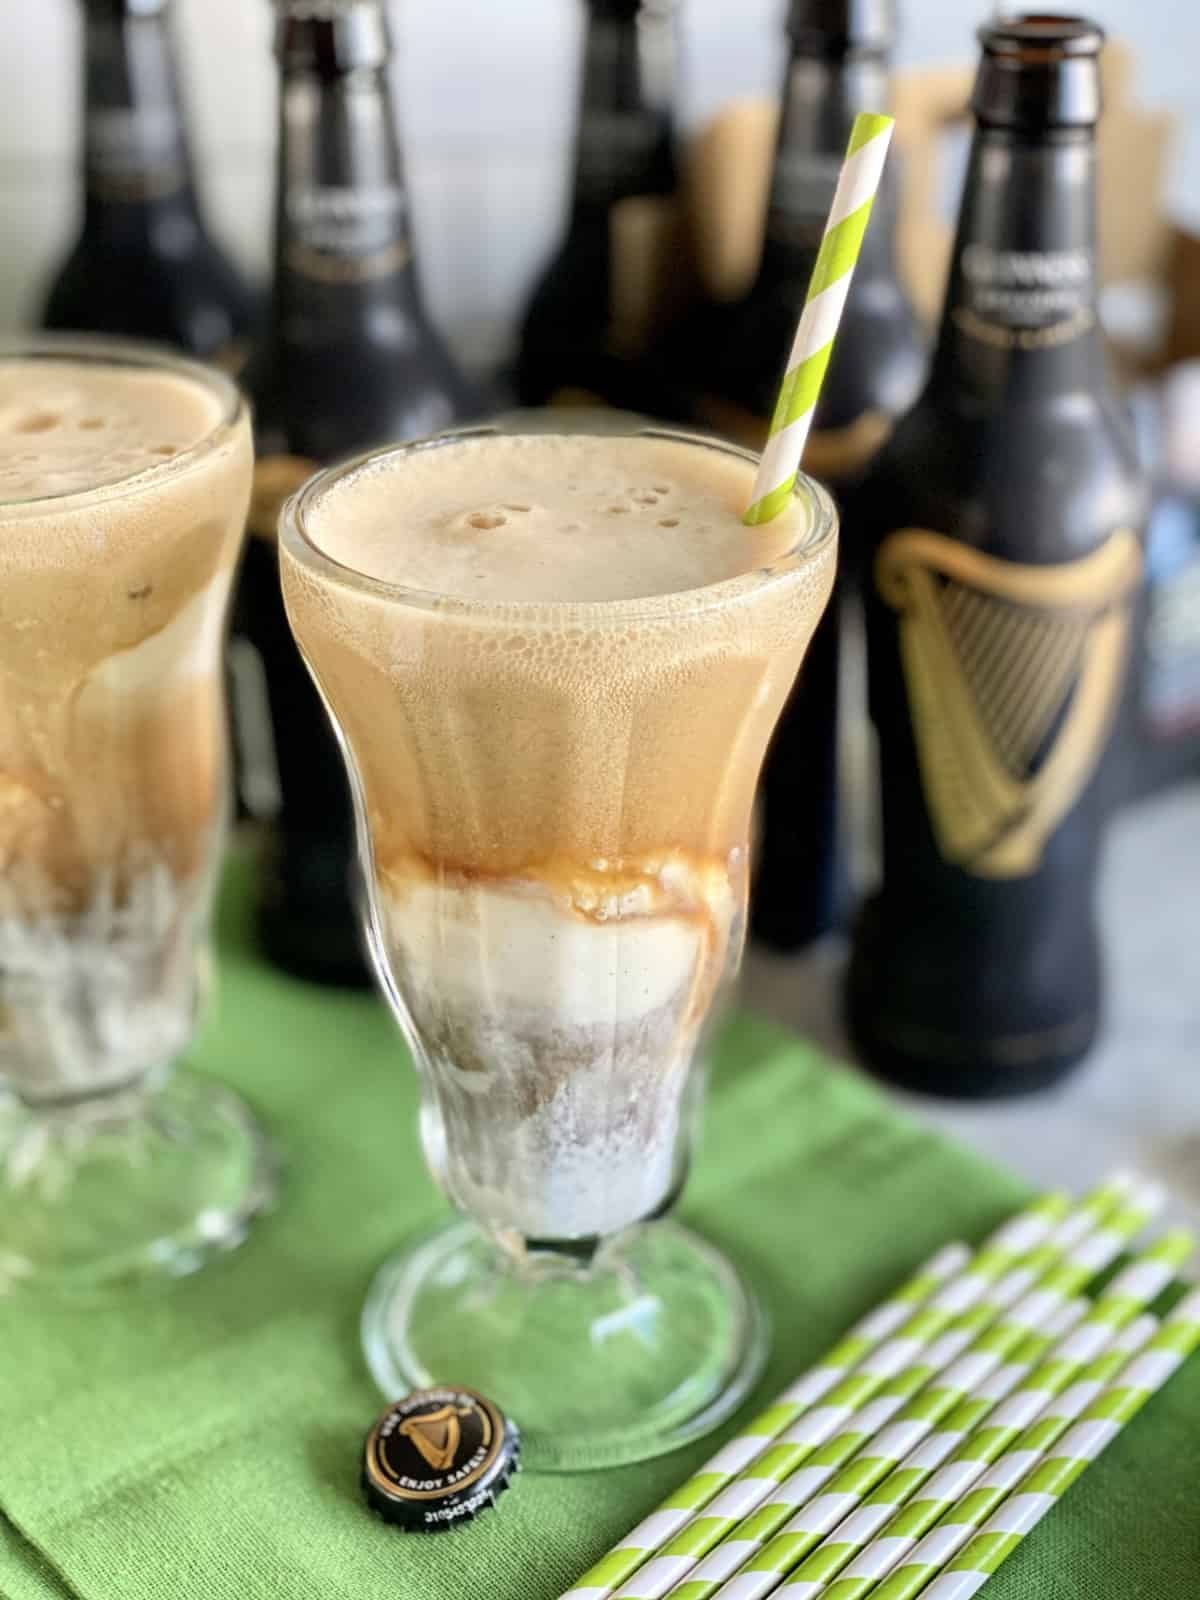 Close up of a glass filled with ice cream and Guinness beer with another glass and beer bottles in background.